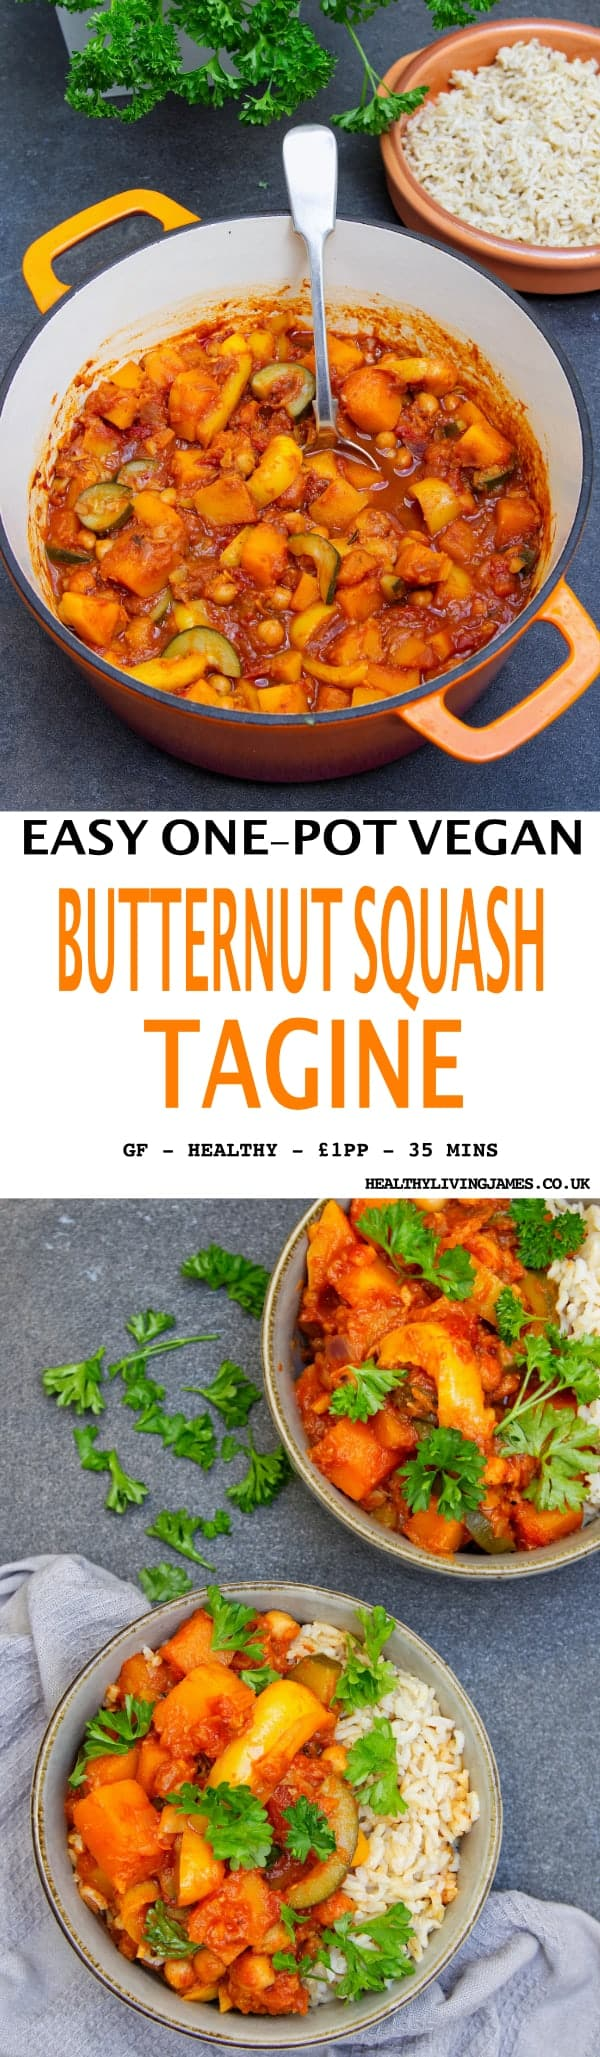 Butternut Squash Tagine Pinterest